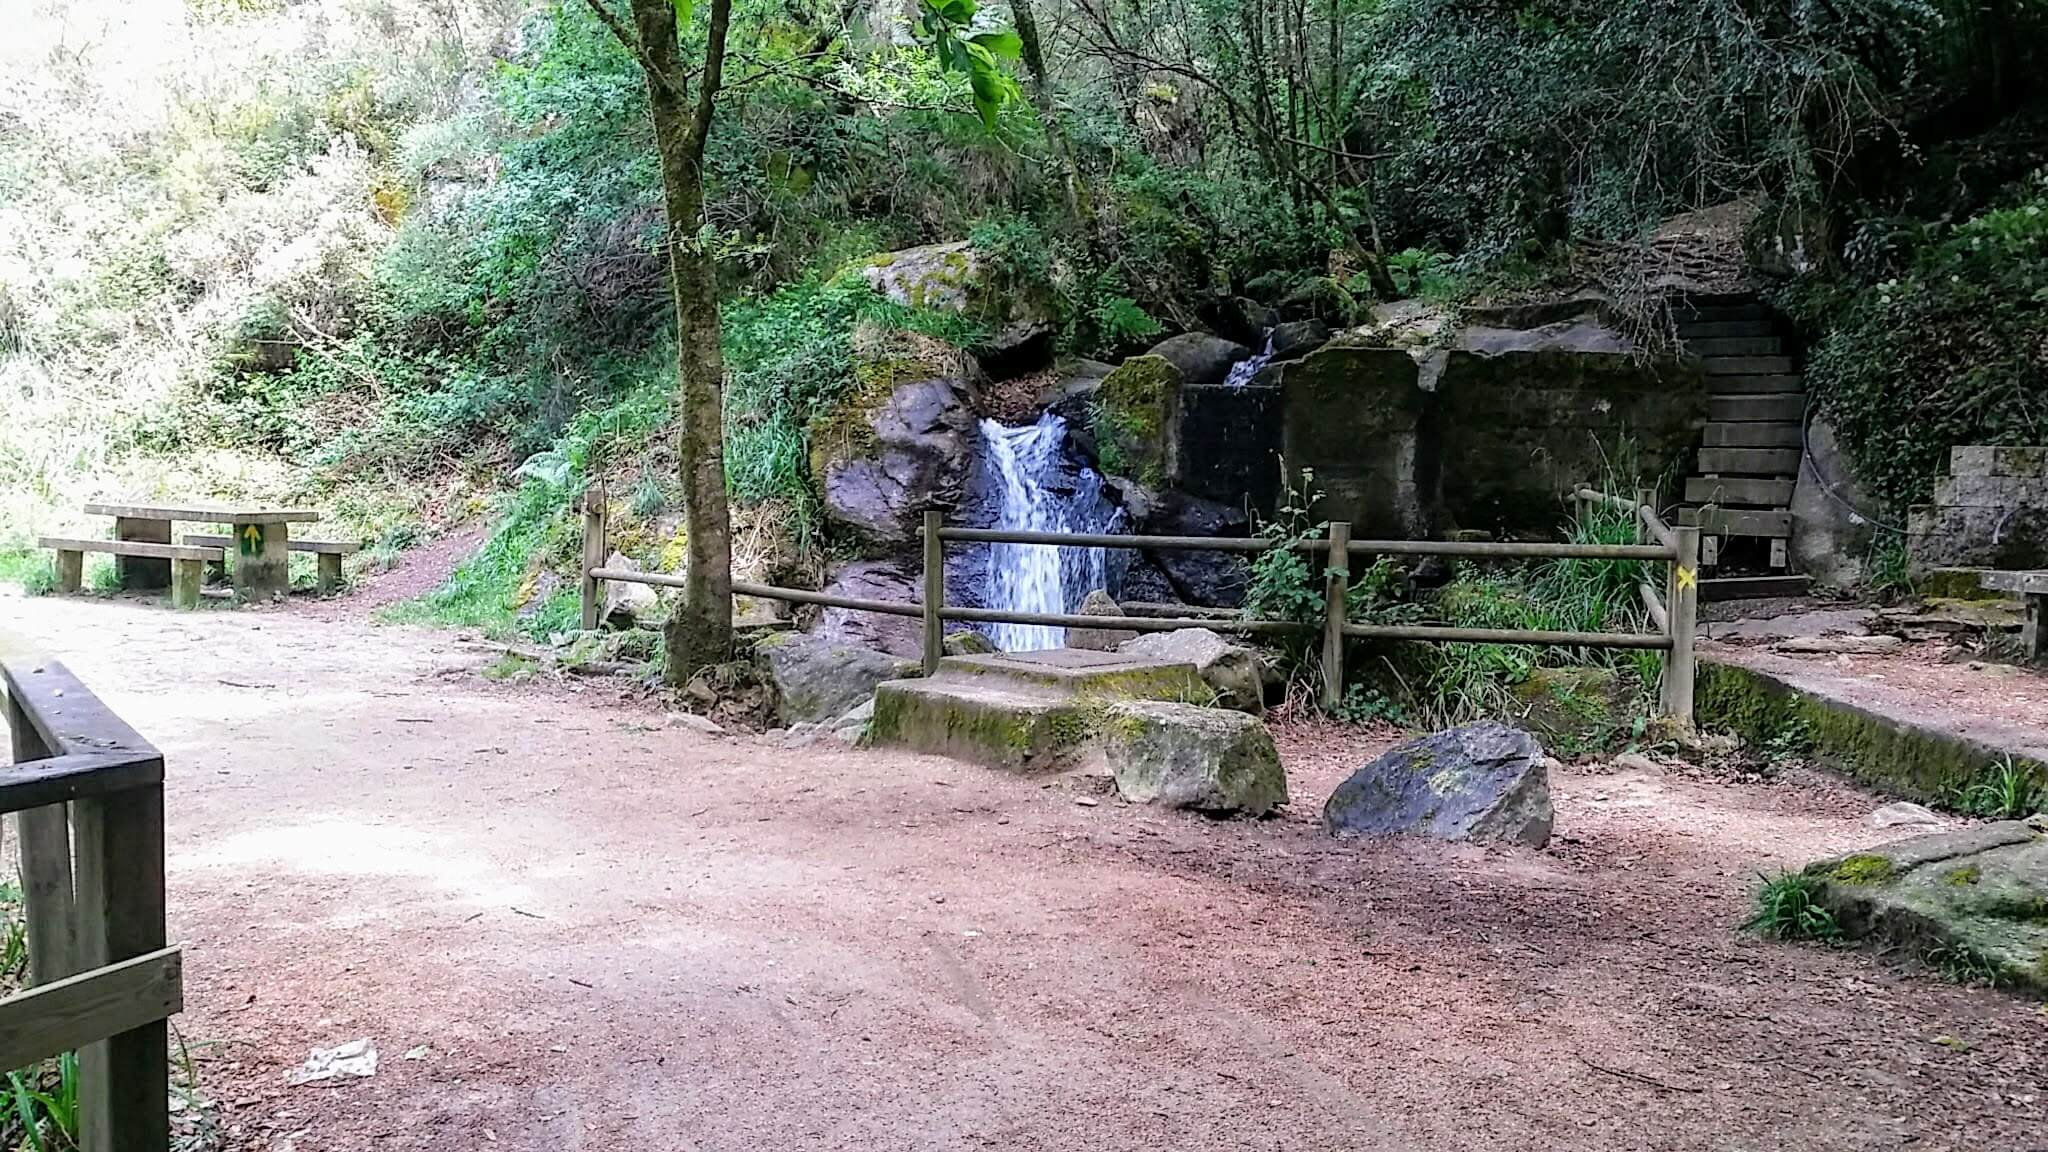 Waterfall Picnic Area at the Rego Fondón on day twenty-one of the Camino Portugués